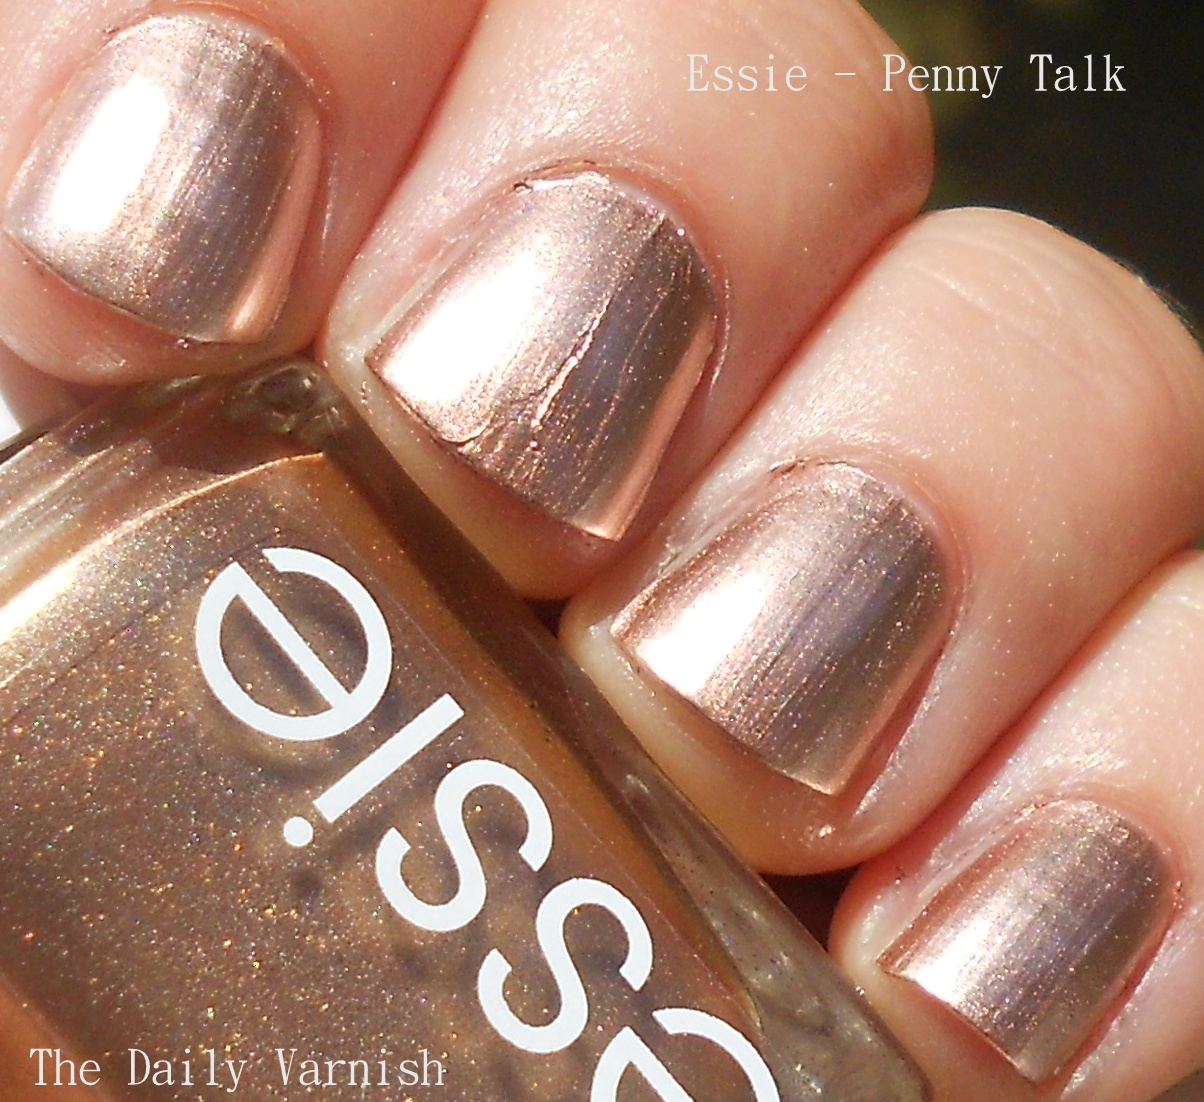 Essie – Penny Talk | The Daily Varnish